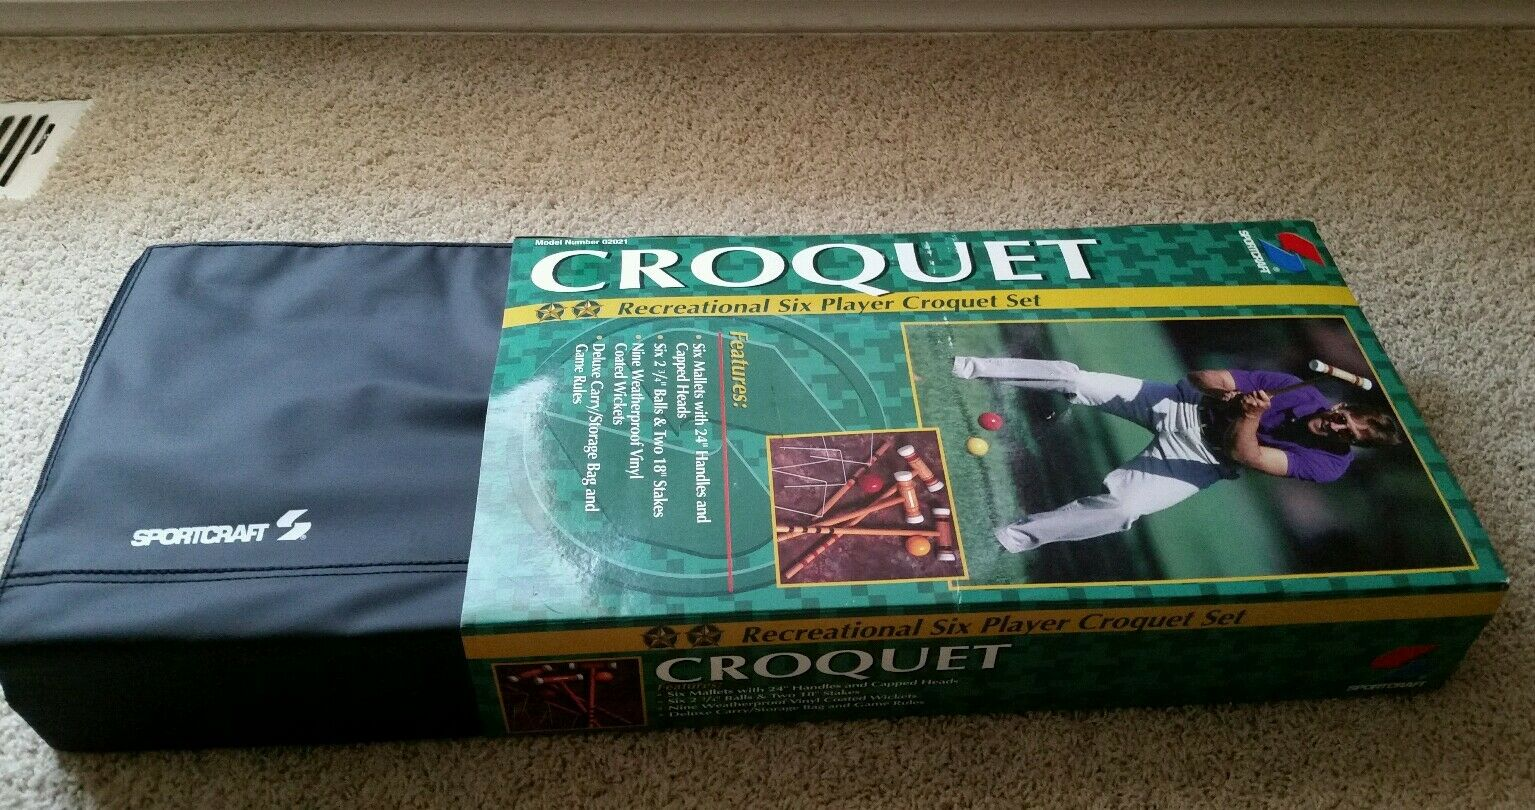 Sportcraft Croquet 6 Player Set Travel Carrying Case BRAND NEW NEVER OPENED